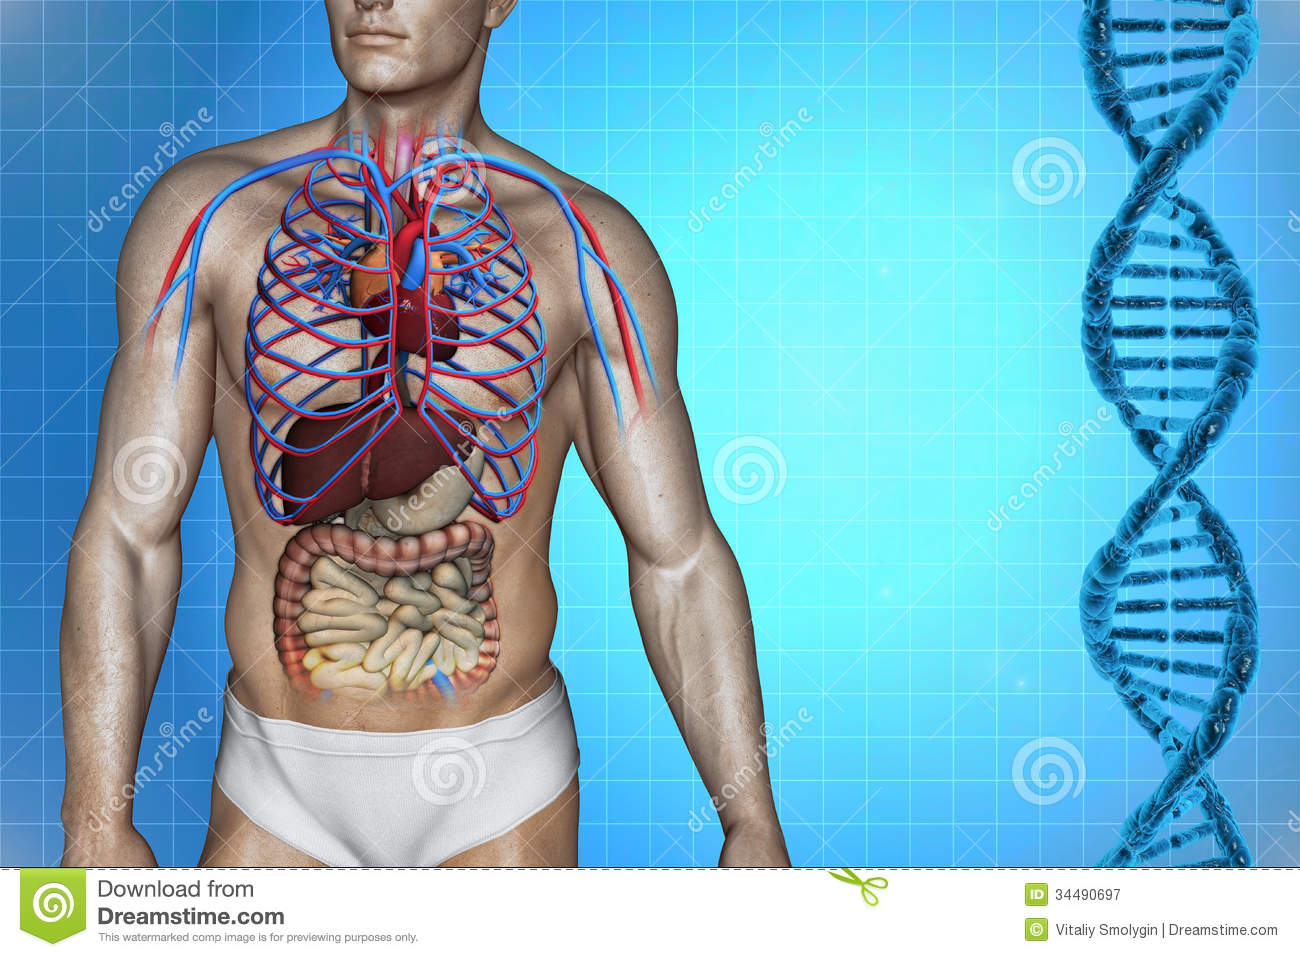 Human heart anatomy stock illustration. Illustration of cava - 34490697